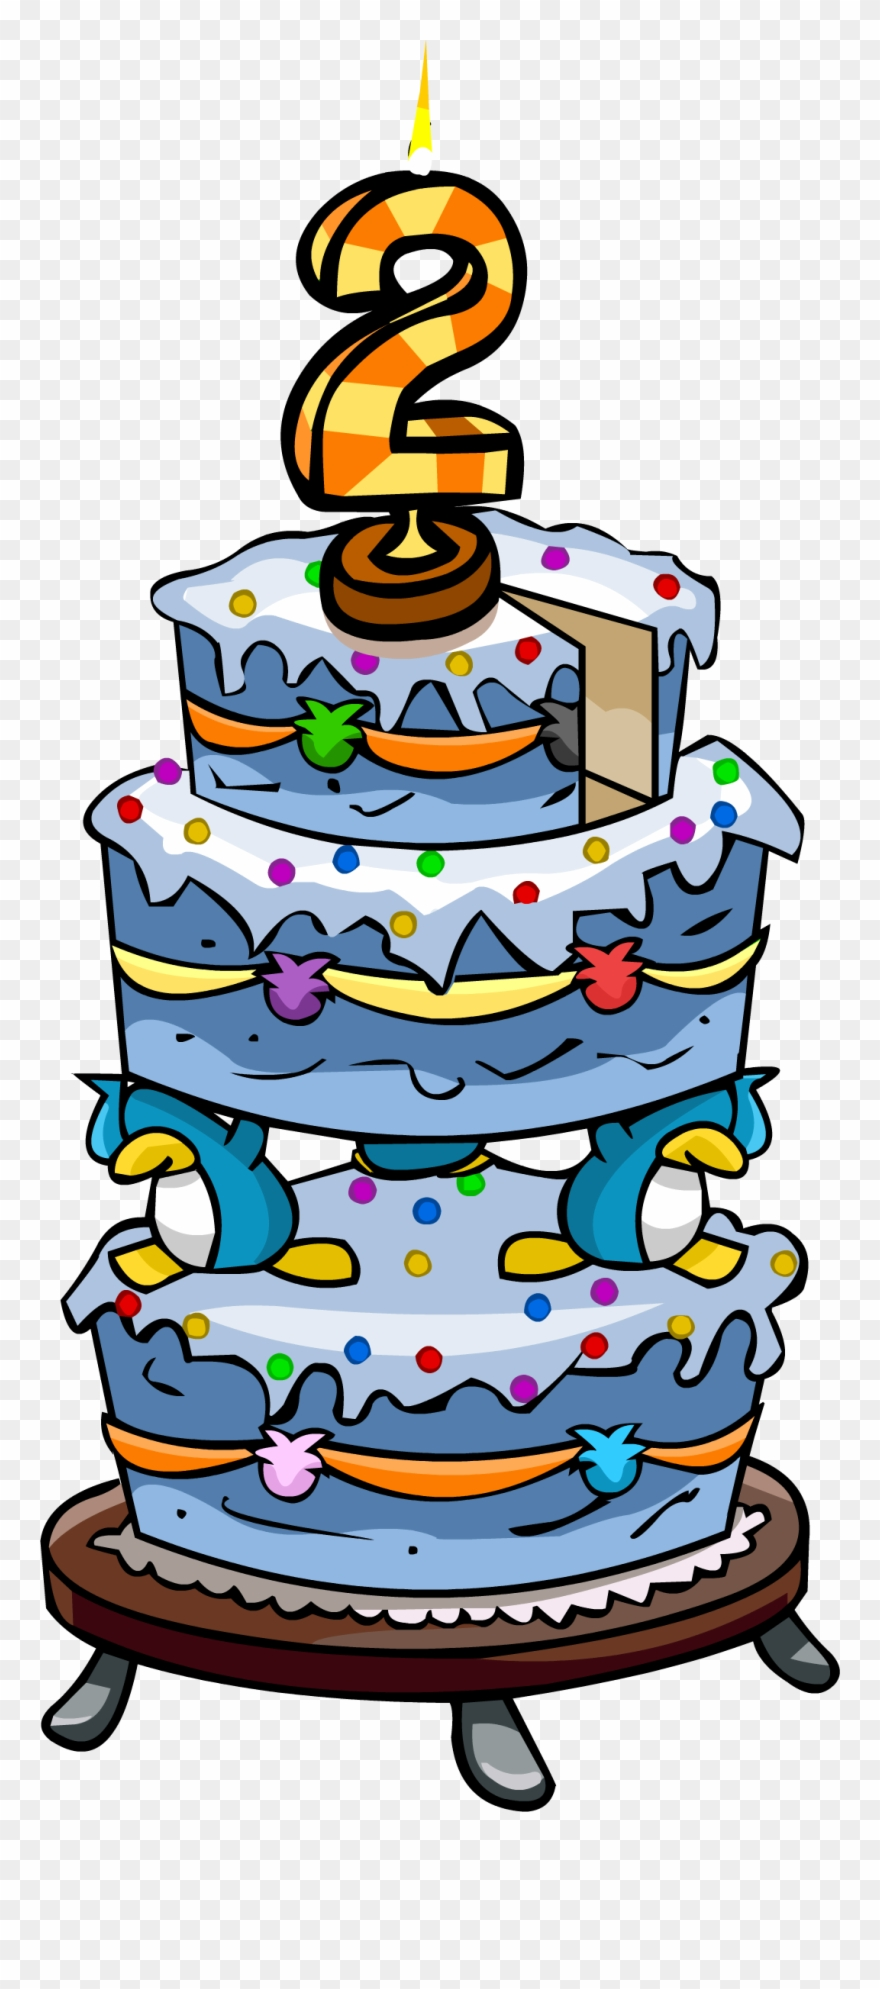 2nd Birthday Cake Png Clipart (#1212142).